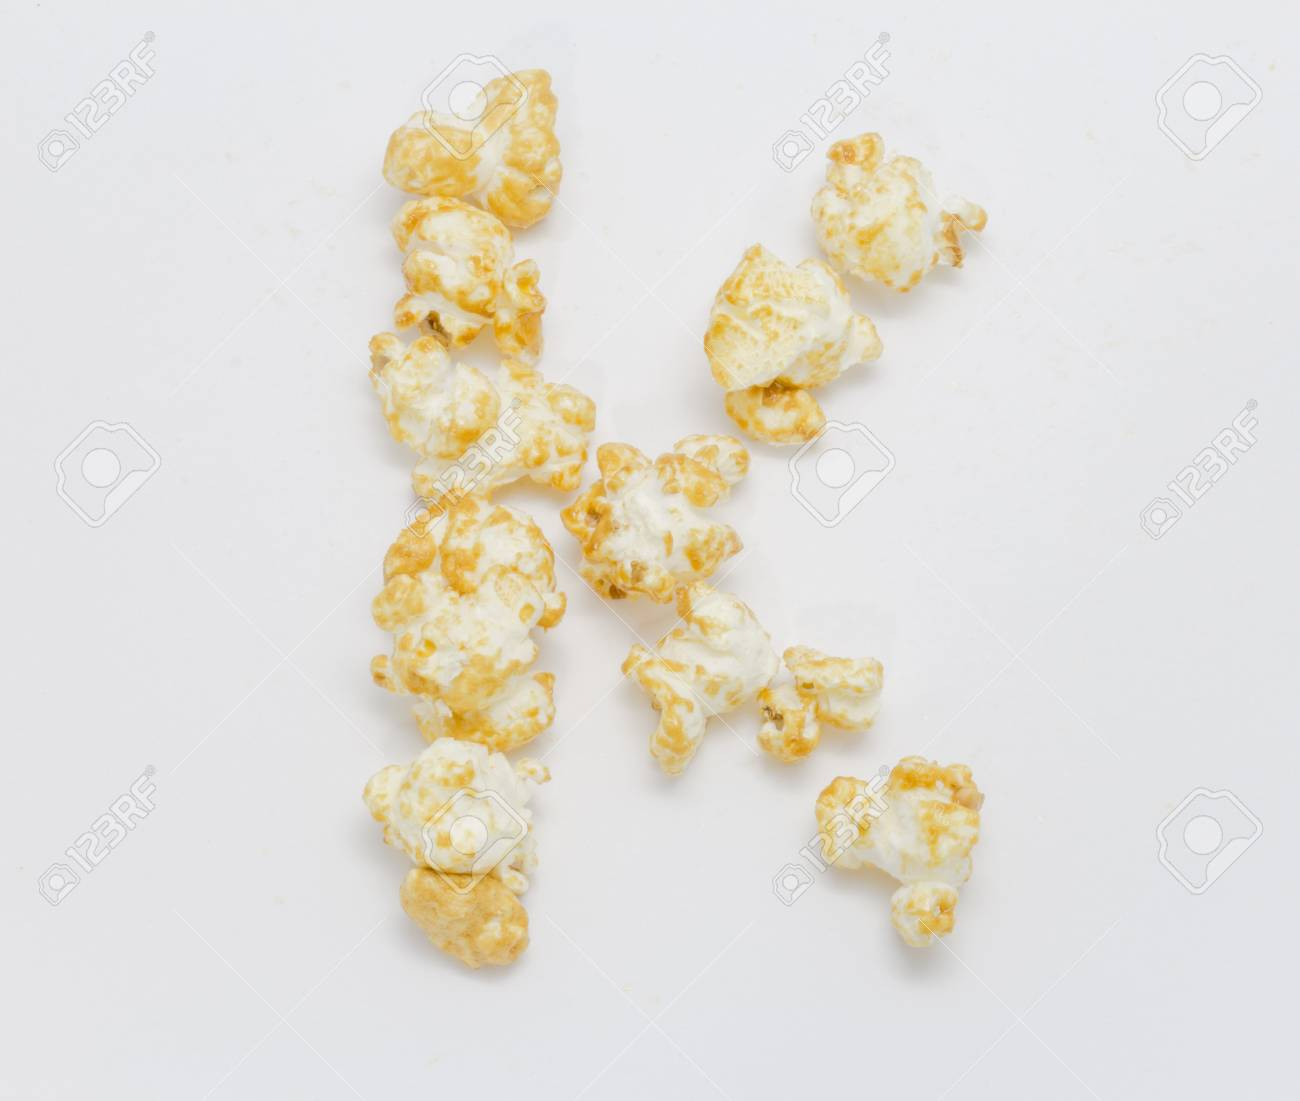 Pop Corn Forming Letter K Isolated On White Background Stock Photo Picture And Royalty Free Image Image 47232129